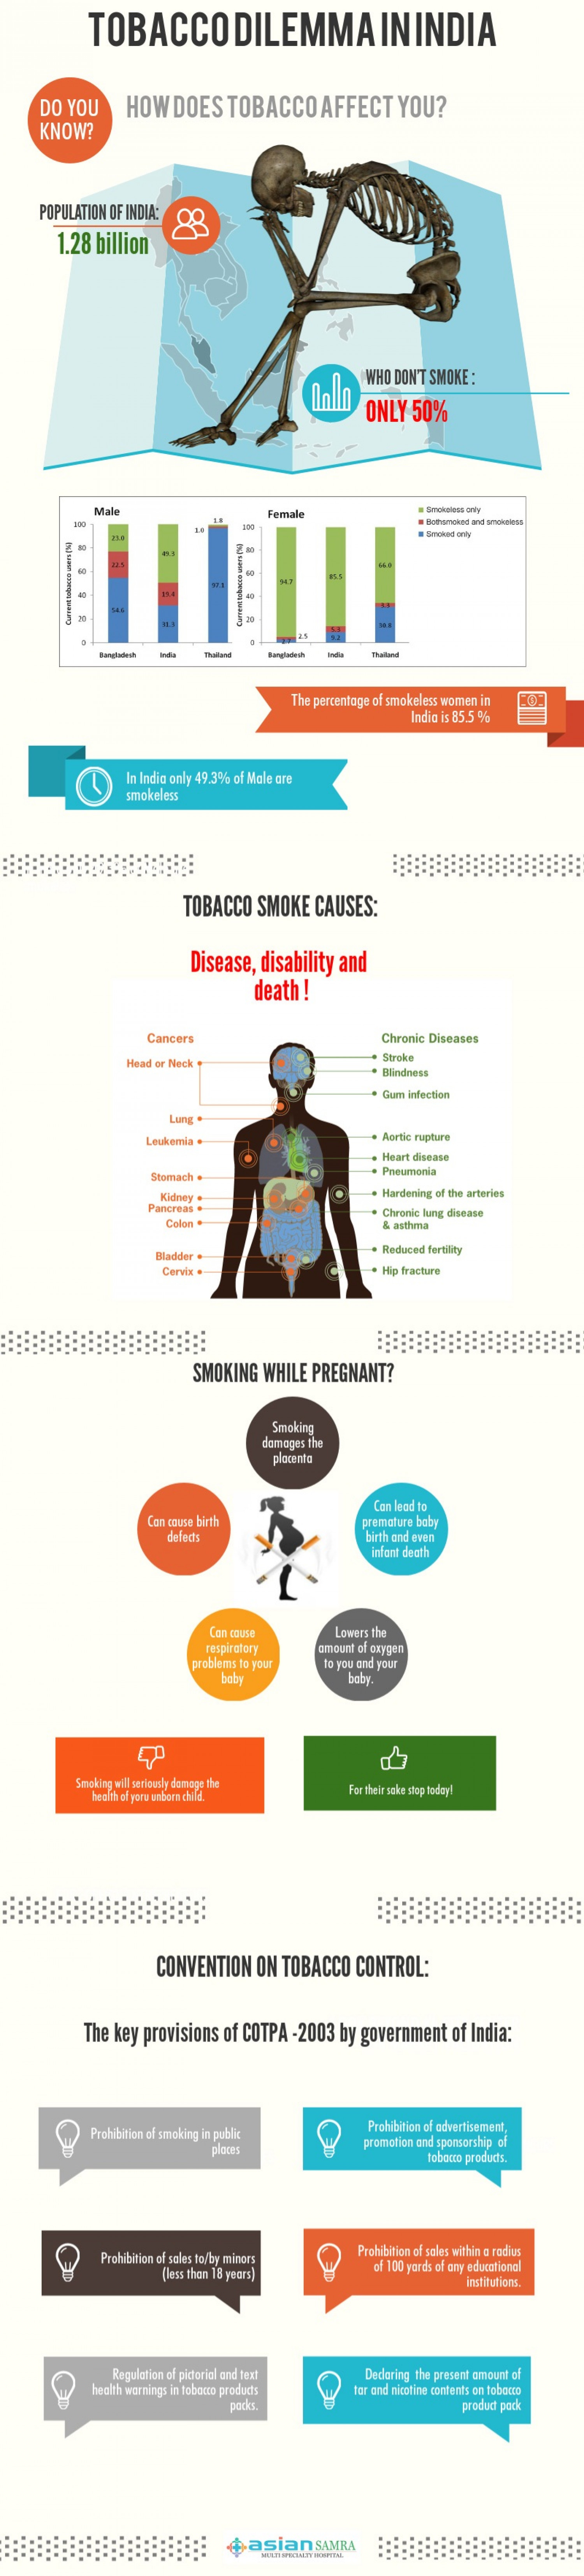 adverse effects of tobacco use in Effects of smoking on cancer outcomes several studies show that smoking has  an adverse effect on cancer treatment outcomes analysis of.